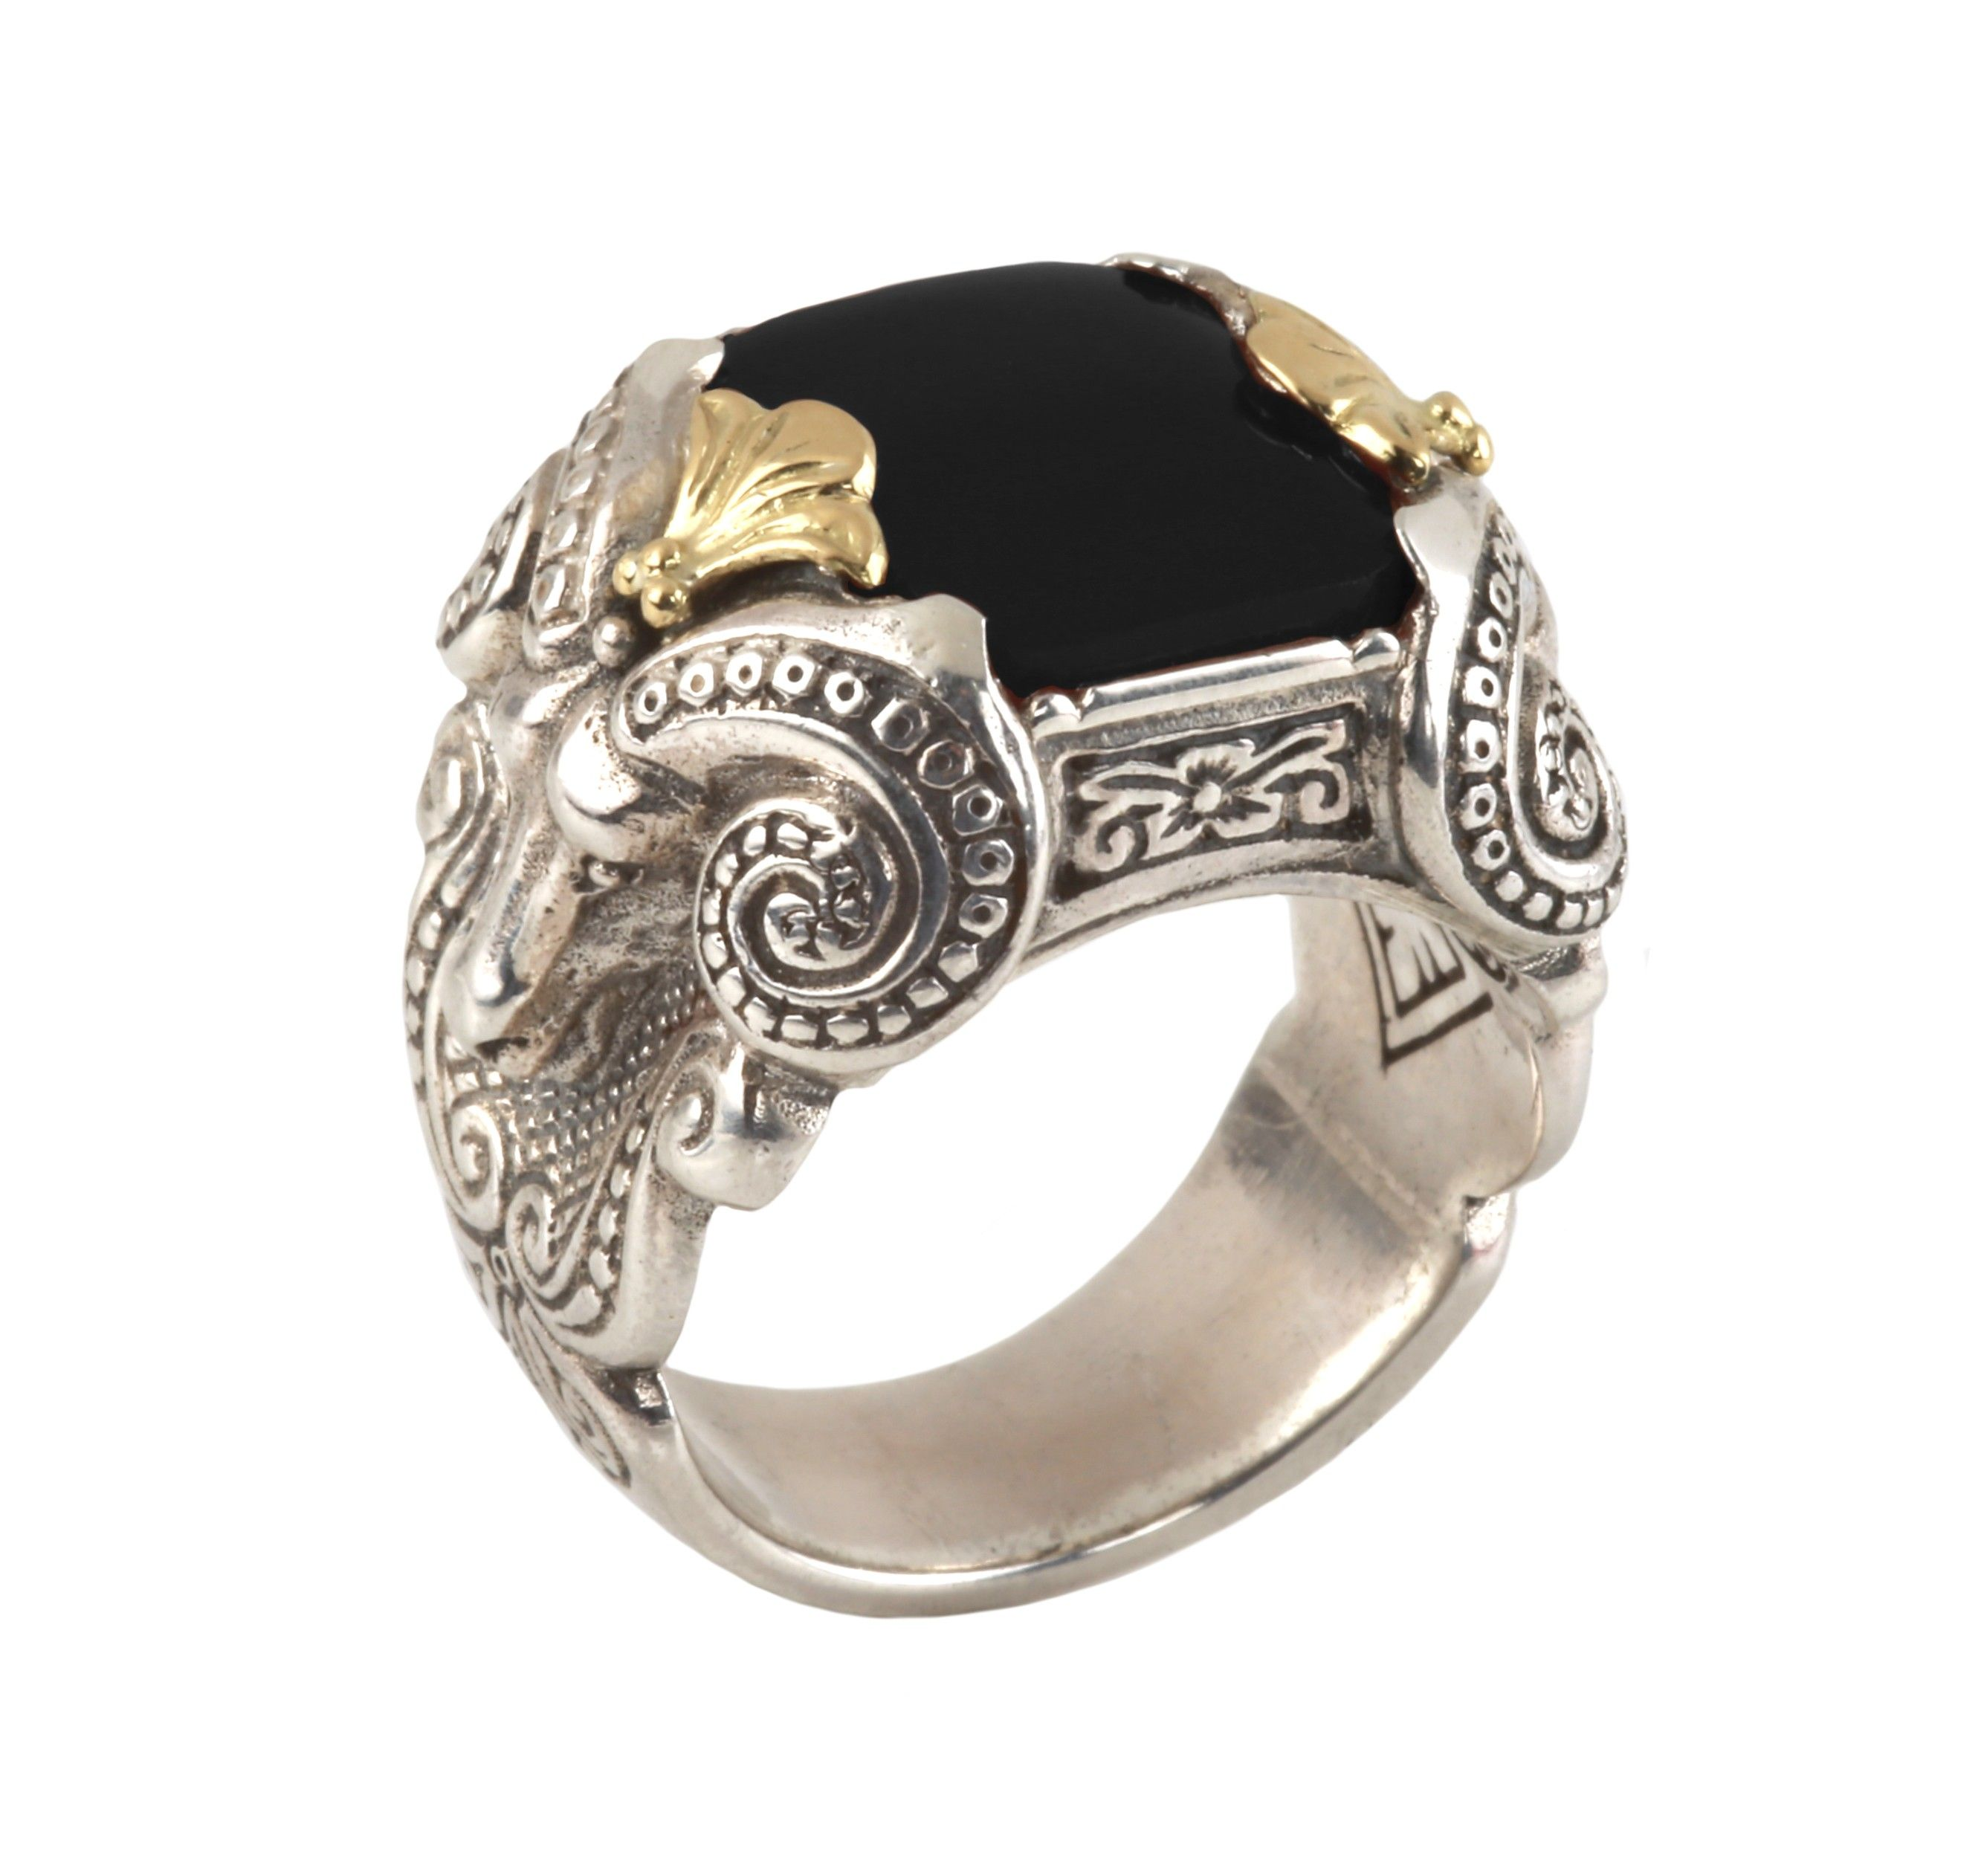 key sterling carries symbol profoundly features the aeravida message a powerful overlapping pattern elegant details engagement this greek ring amazing pr rings plain silver handcrafted which products beautiful ancient